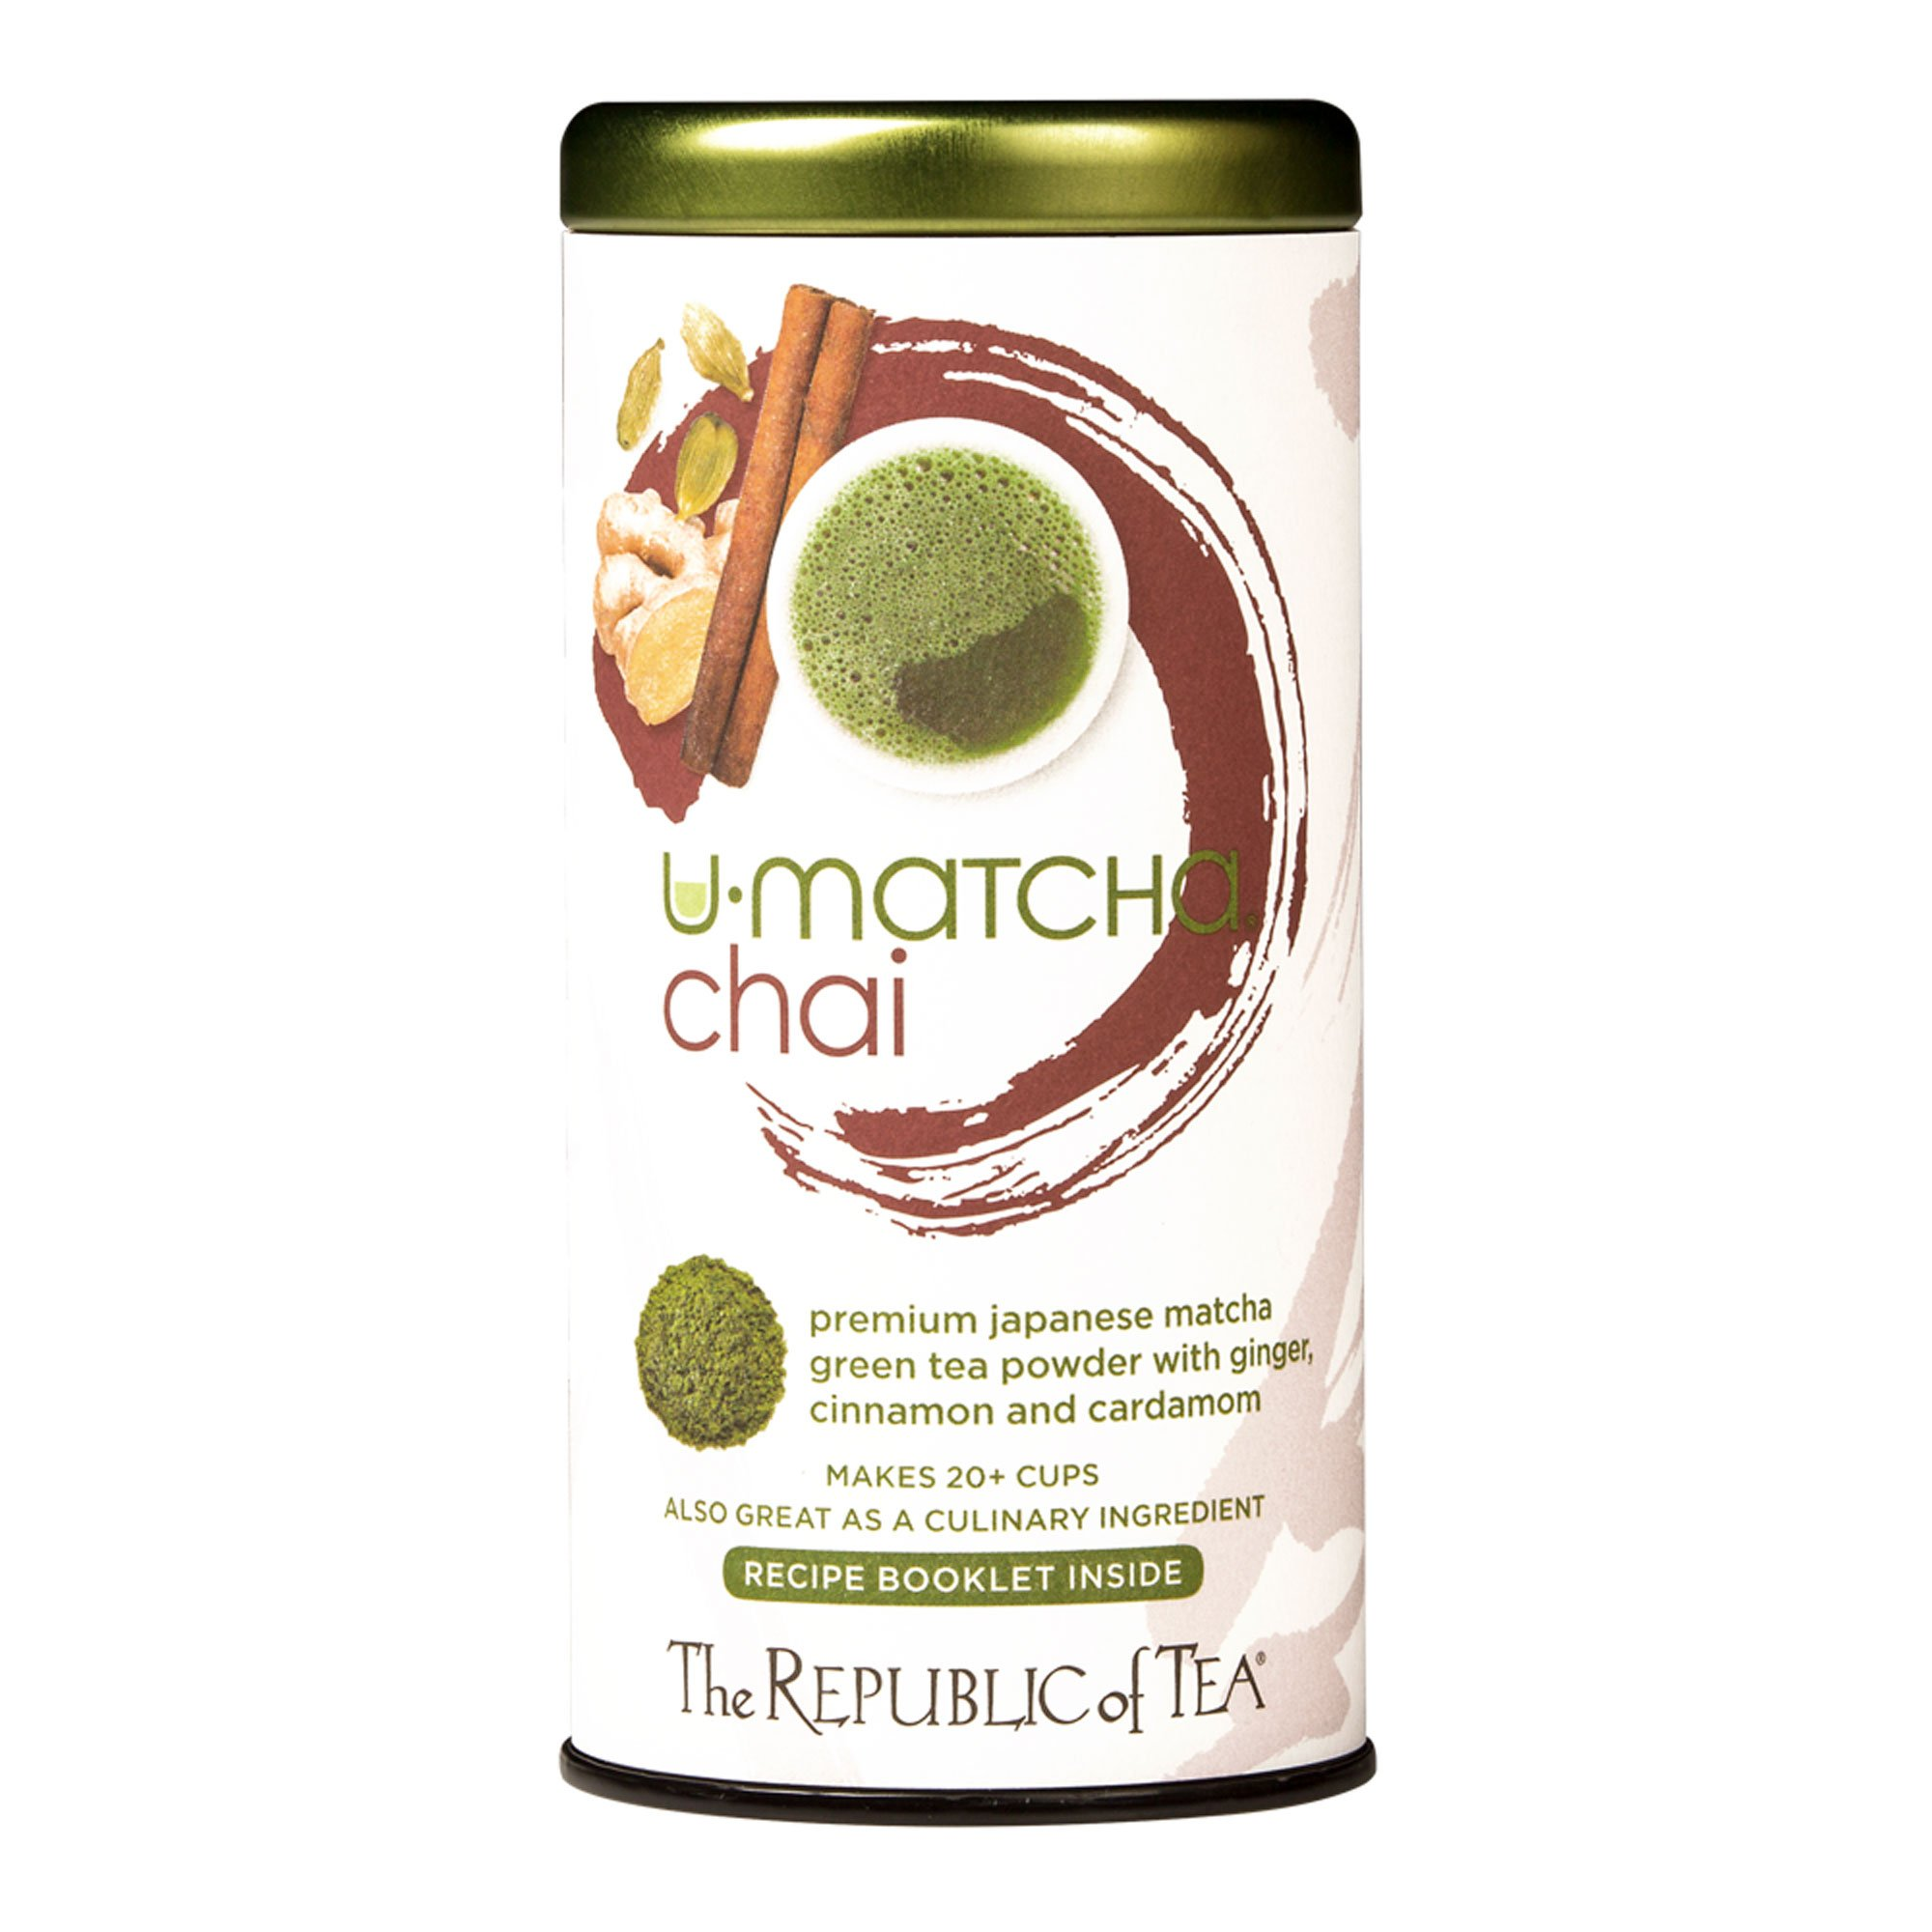 The Republic Of Tea U-Matcha Chai Tea, 1.5 Ounces / 20+ Cups, Chai Spices and Matcha Tea Powder